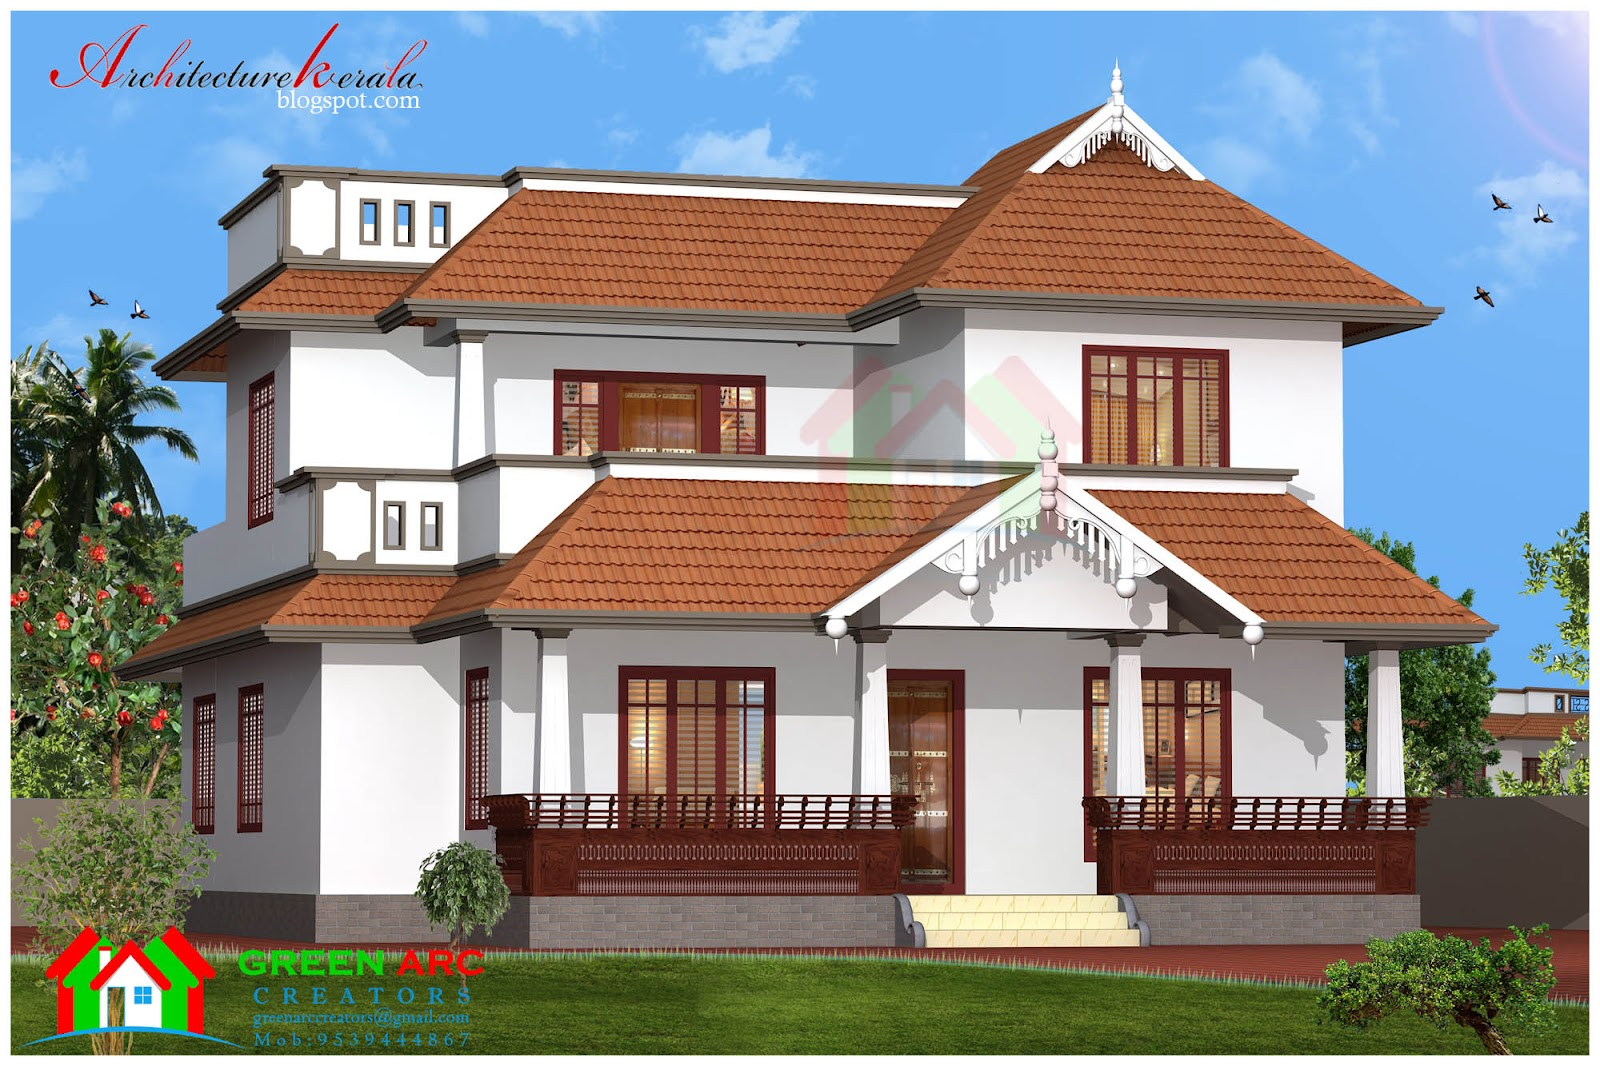 Architecture kerala traditional style kerala house plan for Kerala style home